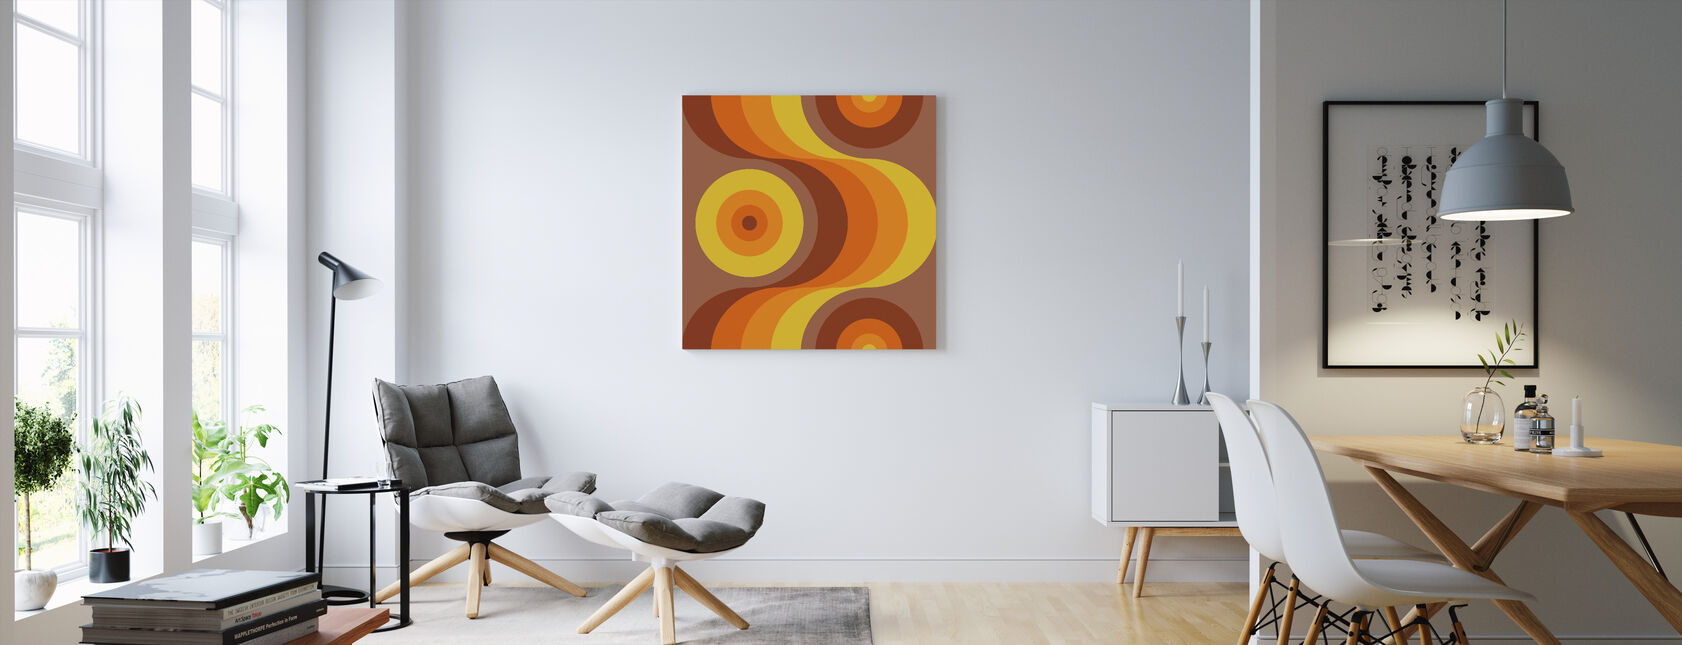 Retro Orange - Canvas print - Living Room